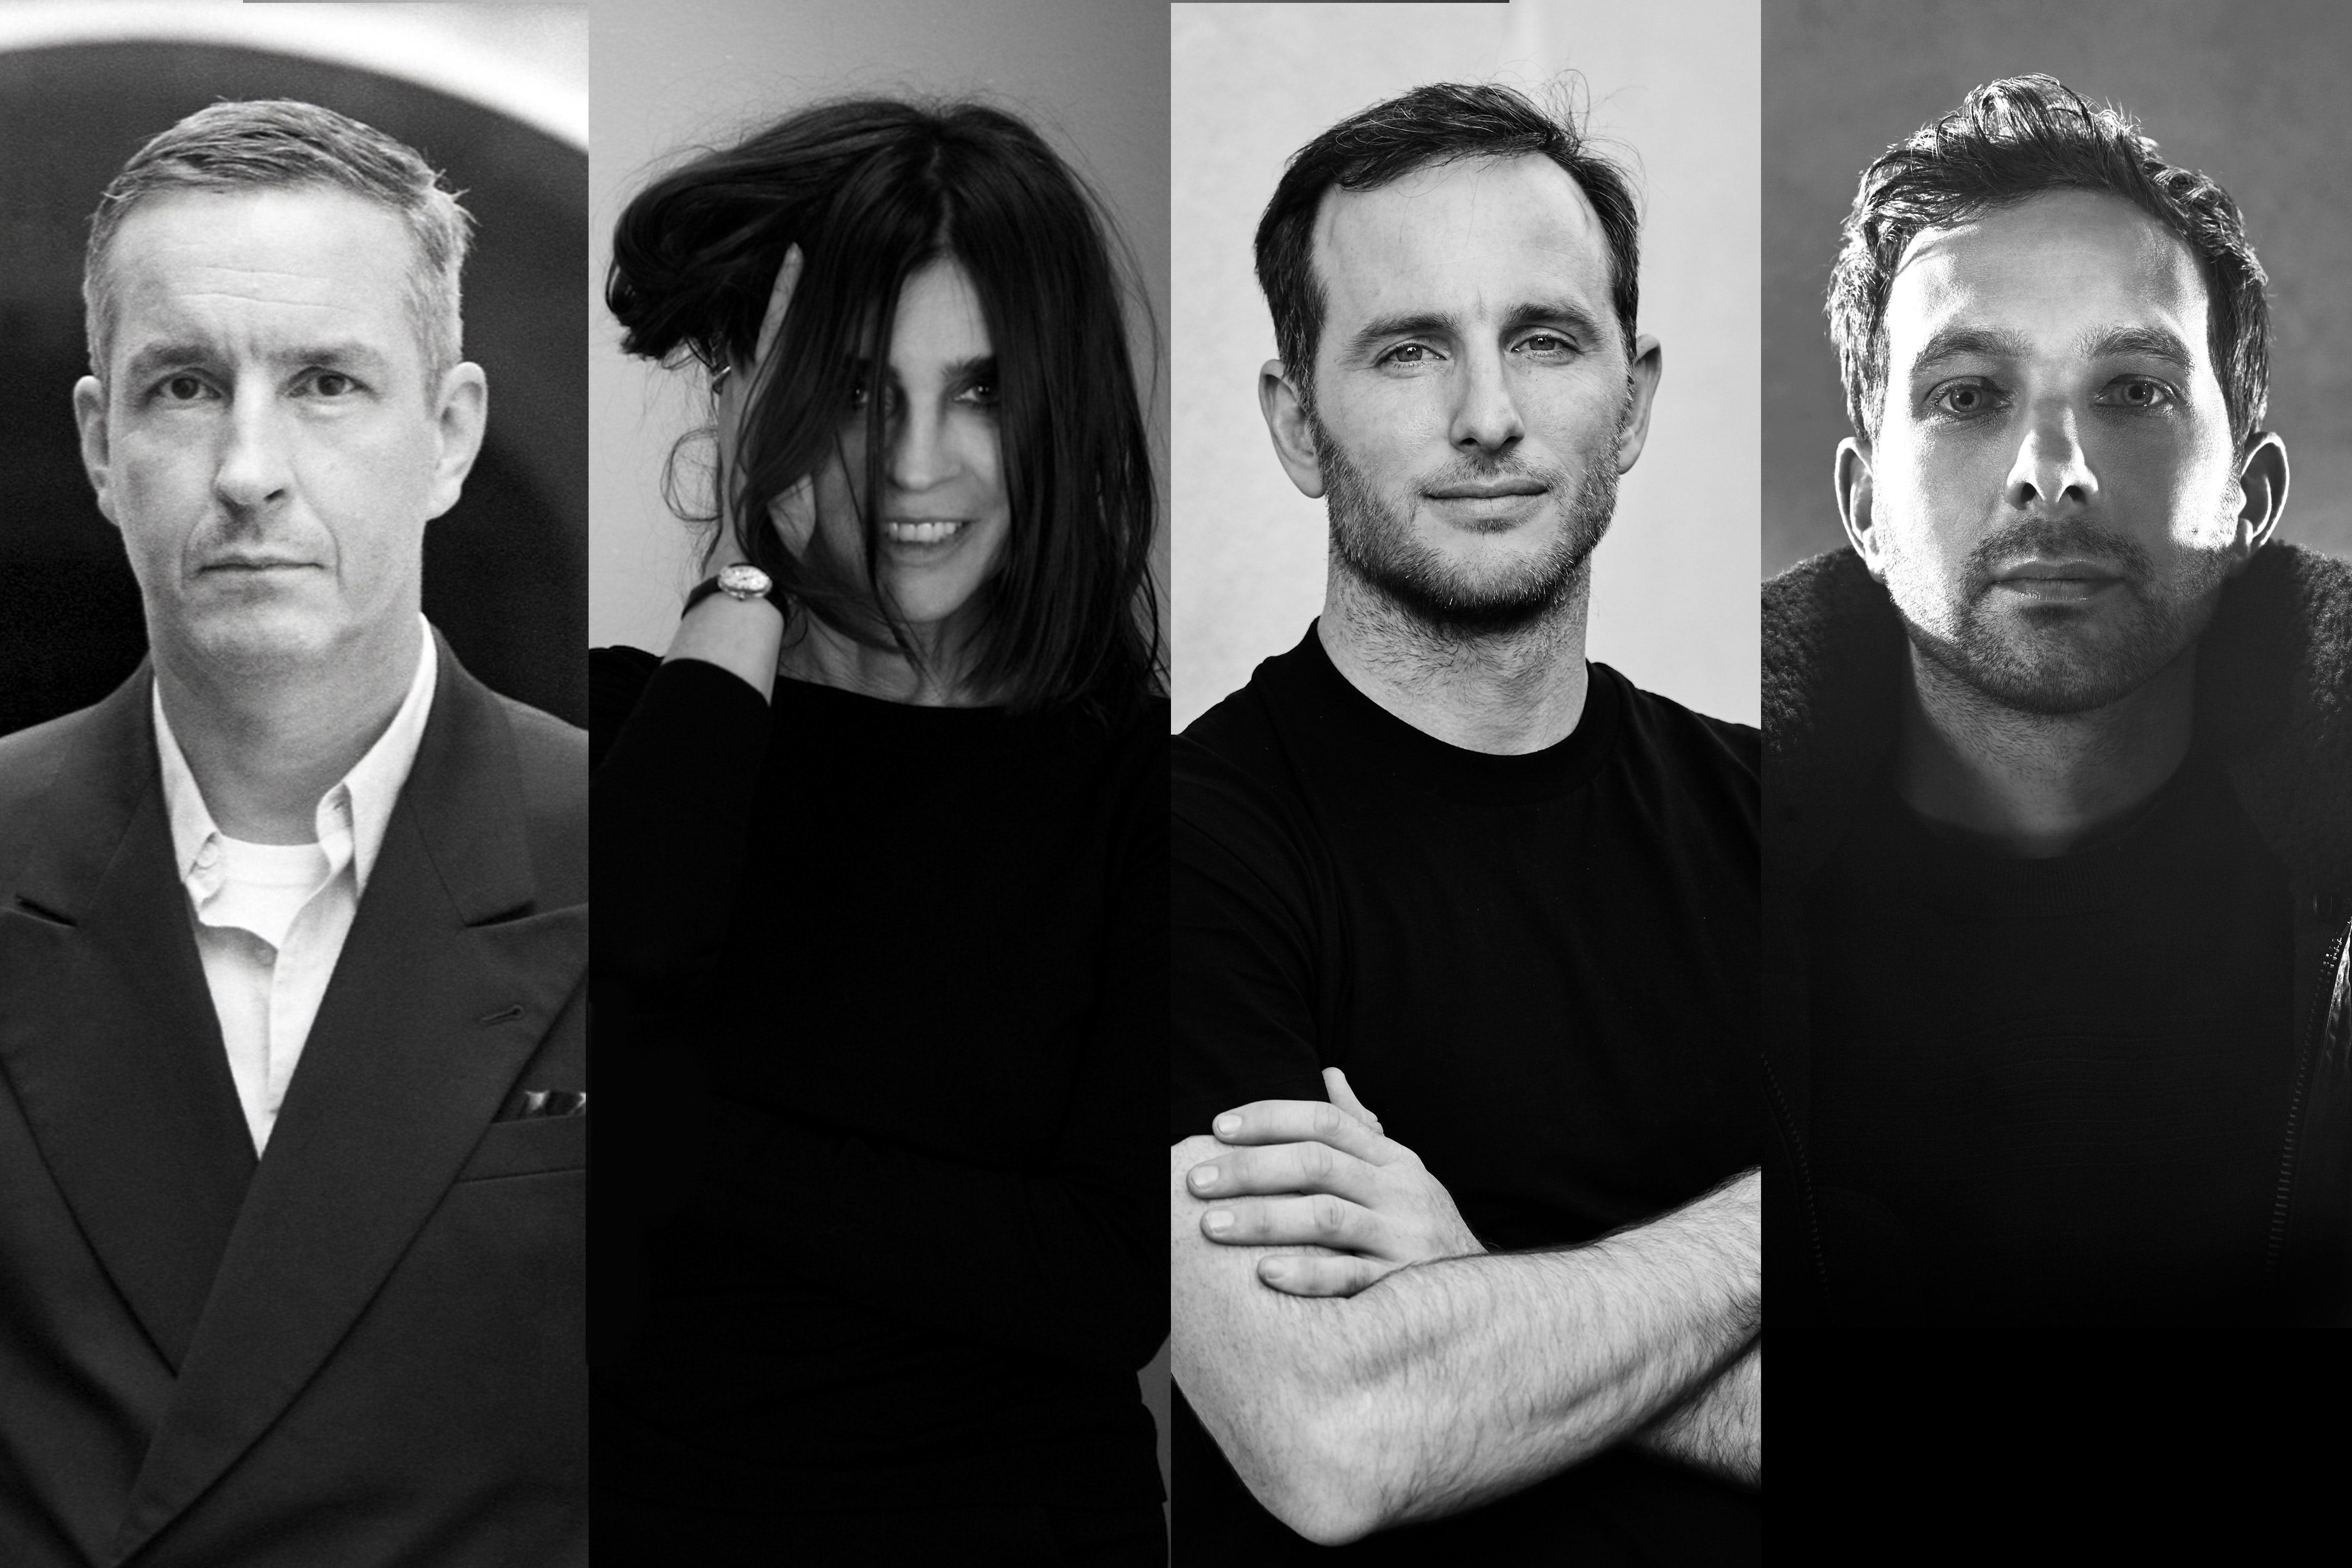 Dries Van Noten, Carine Roitfeld, Joe Gebbia and Dynamo to Speak at VOICES 2017